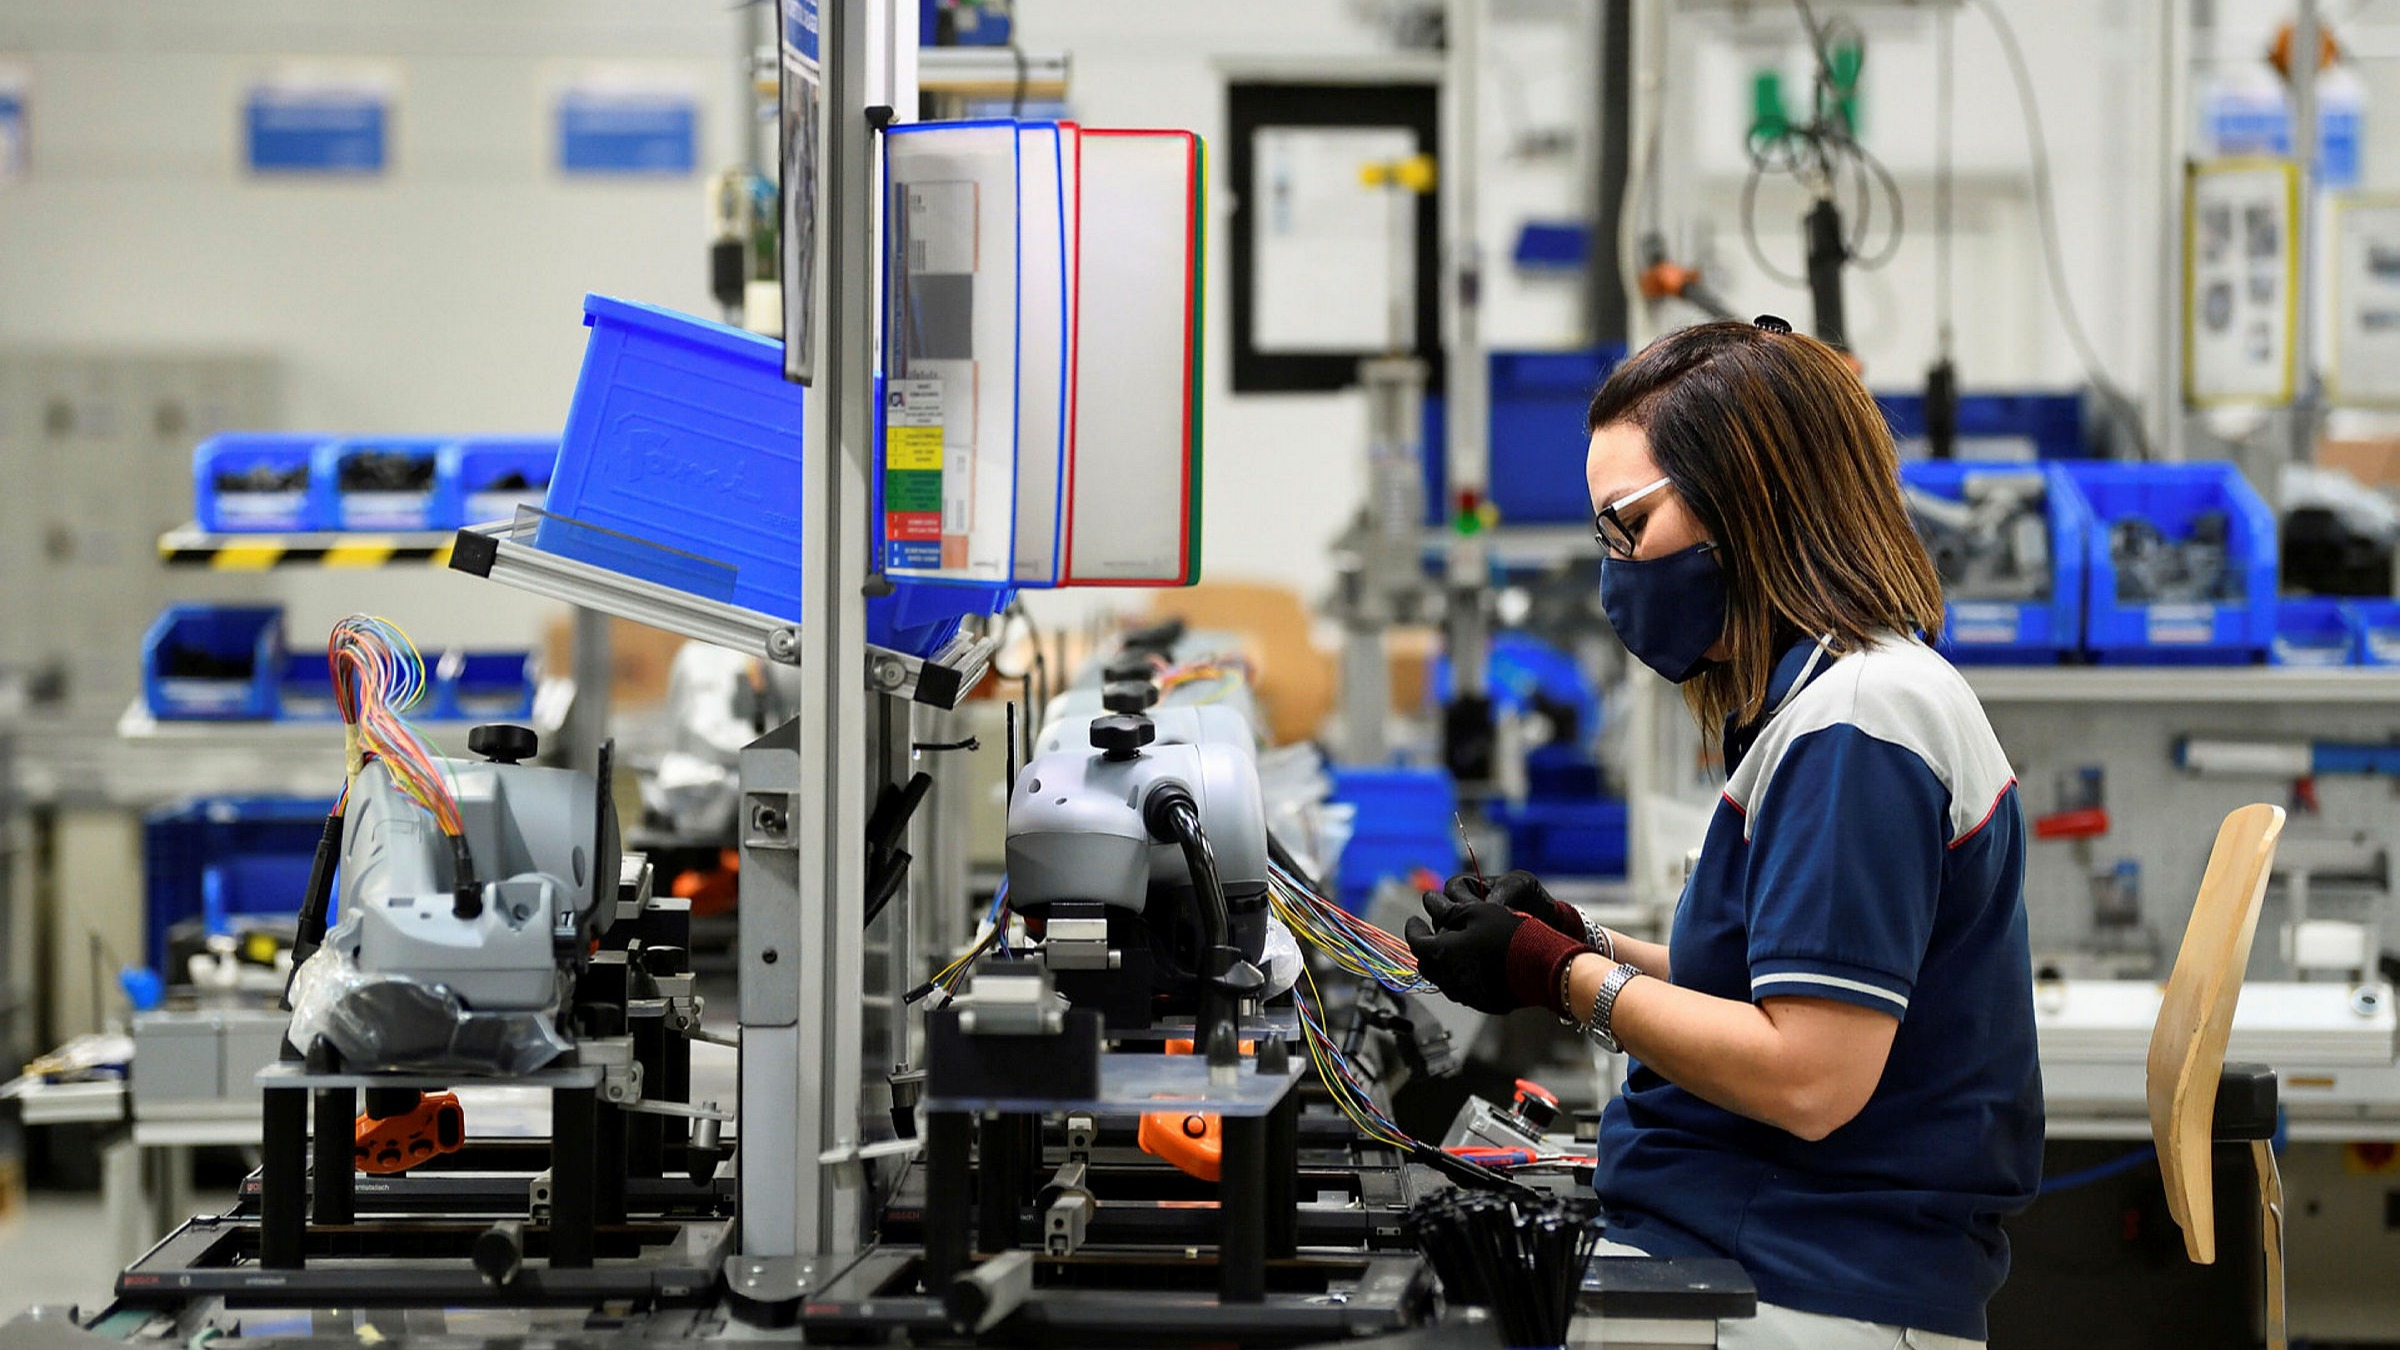 Italy and Spain enjoy manufacturing bounceback as demand rises   Financial  Times